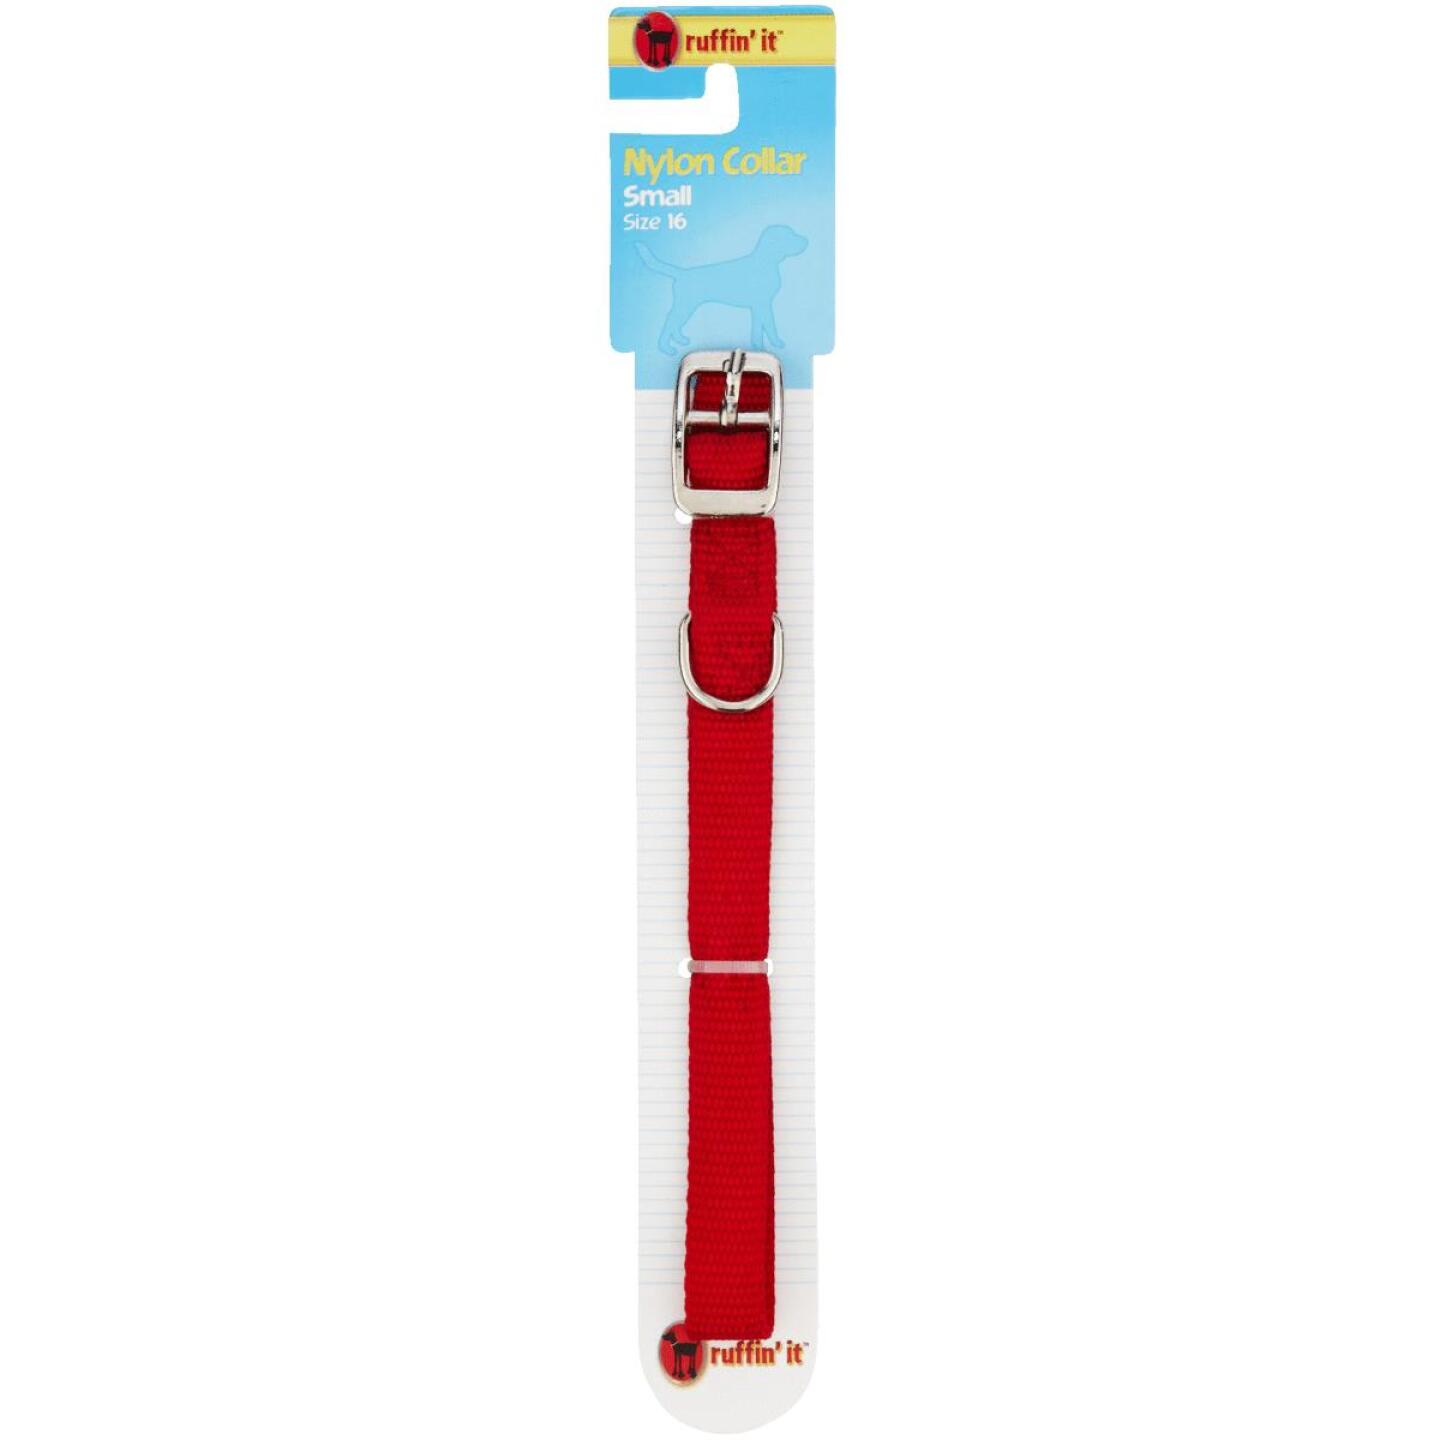 Westminster Pet Ruffin' it Adjustable 16 In. Nylon Dog Collar Image 2